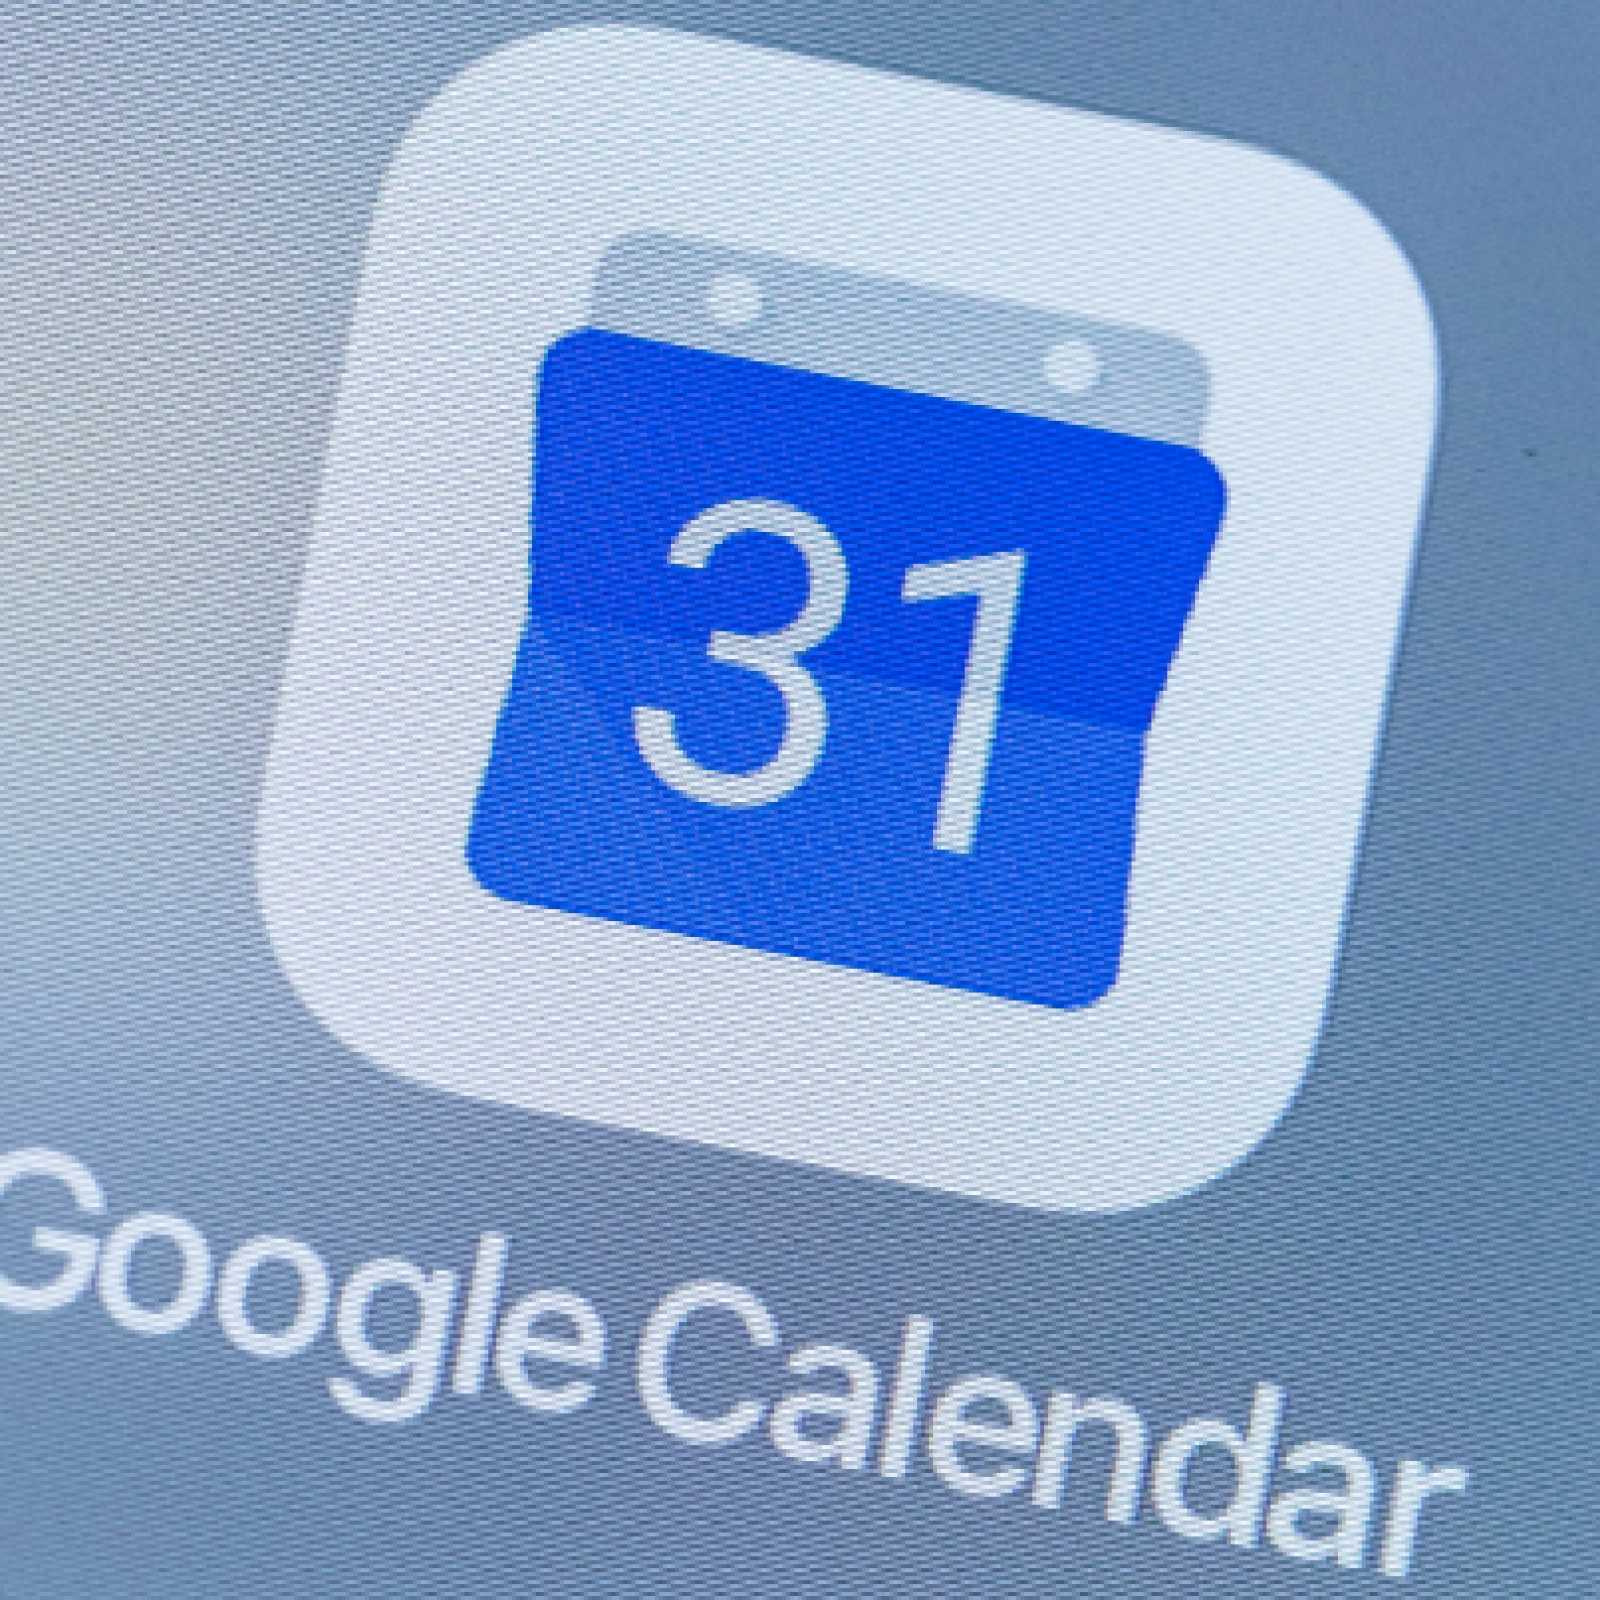 Google Calendar Goes Down, Twitter Users Declare Tuesday